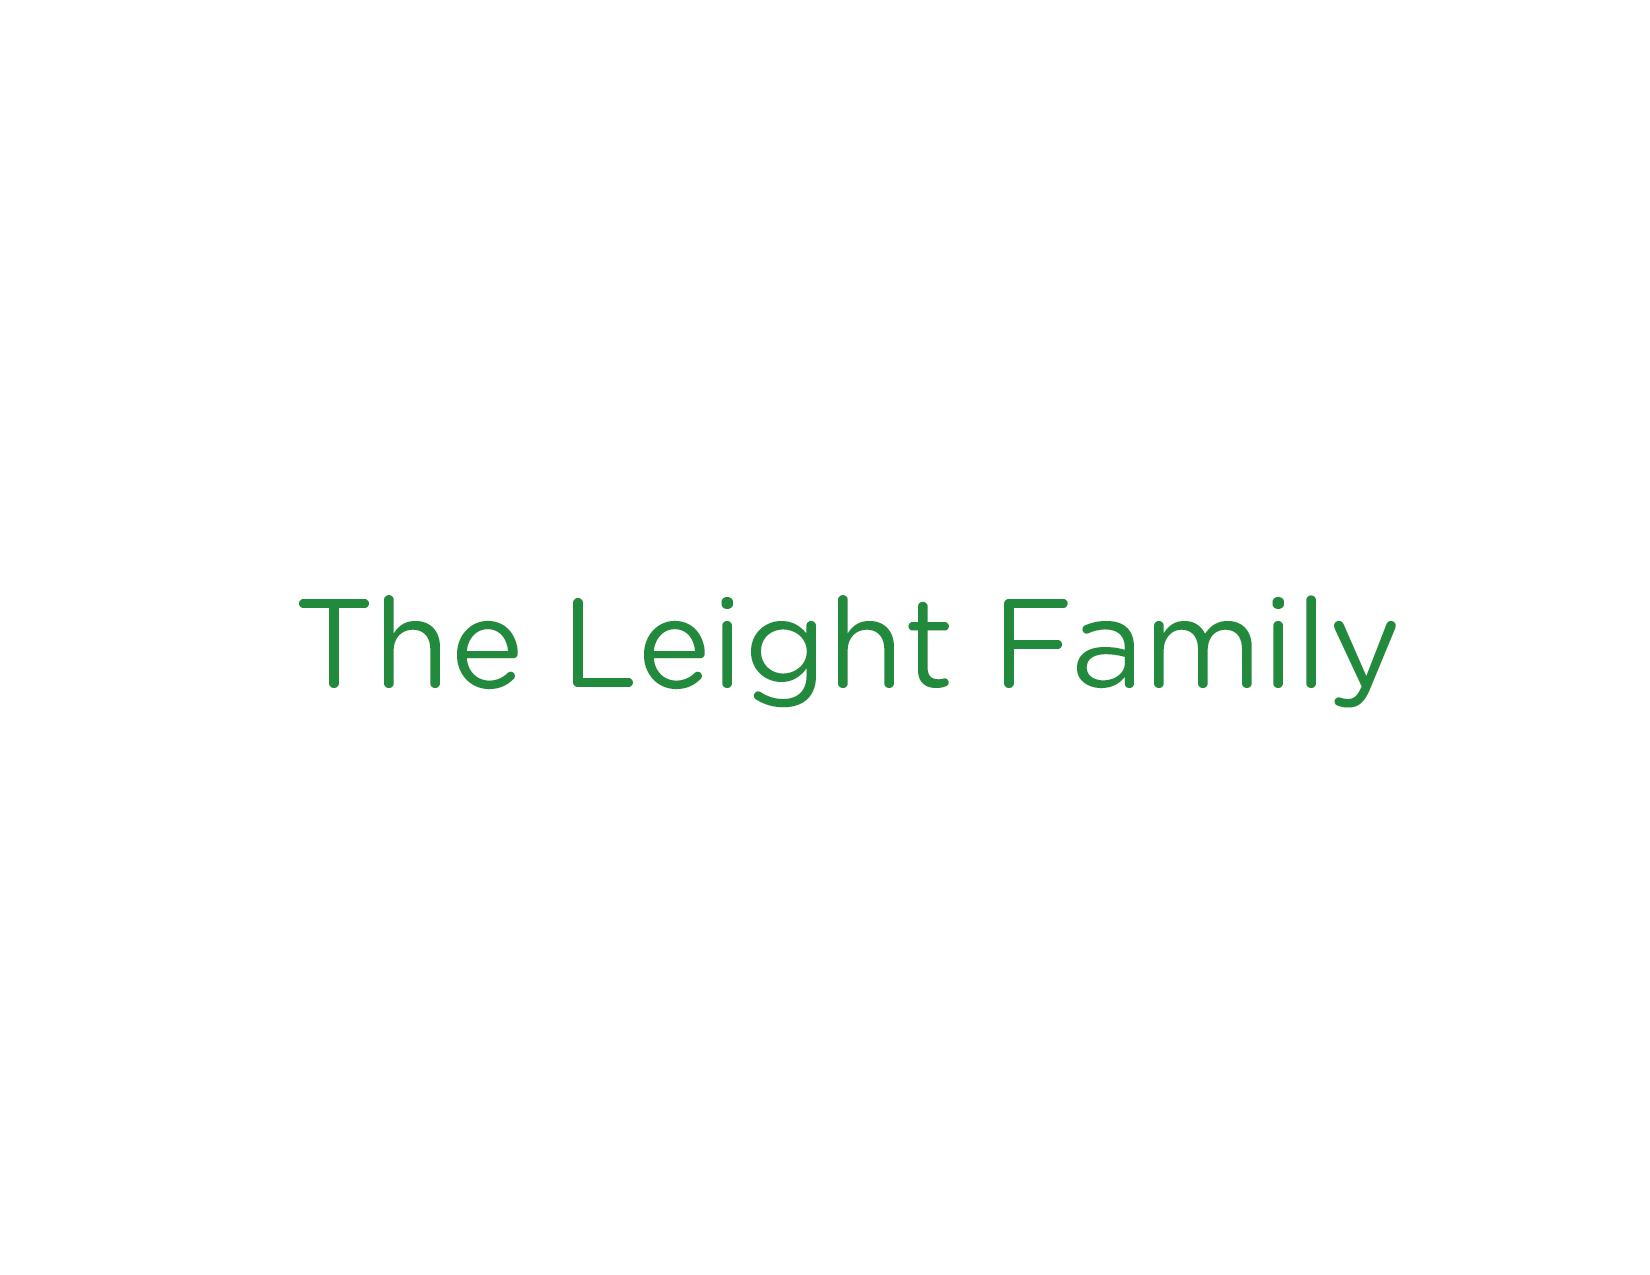 The Leight Family